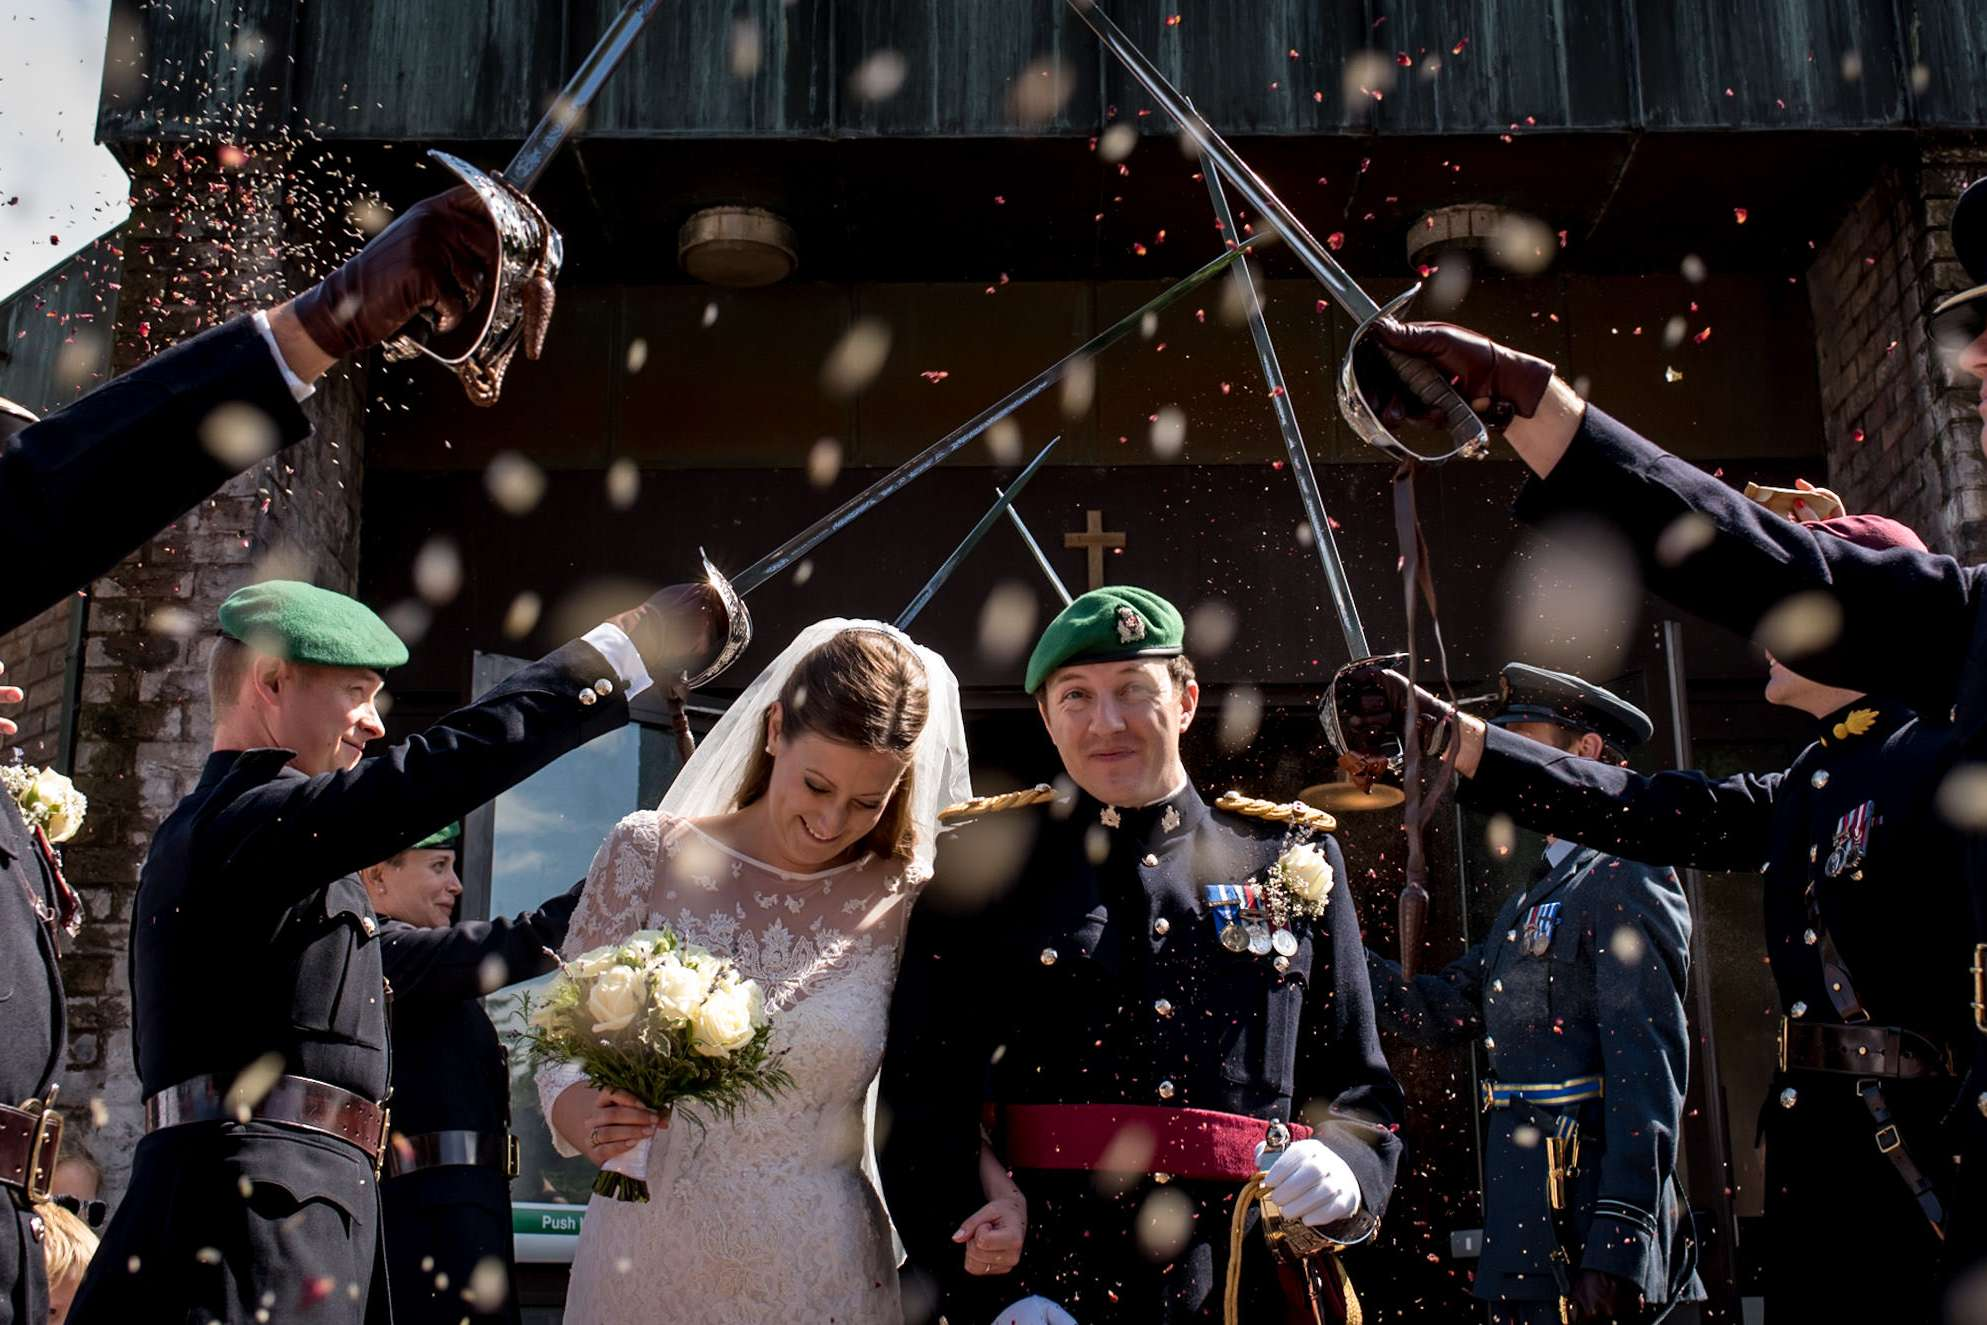 honour guard and confetti at this fun military wedding